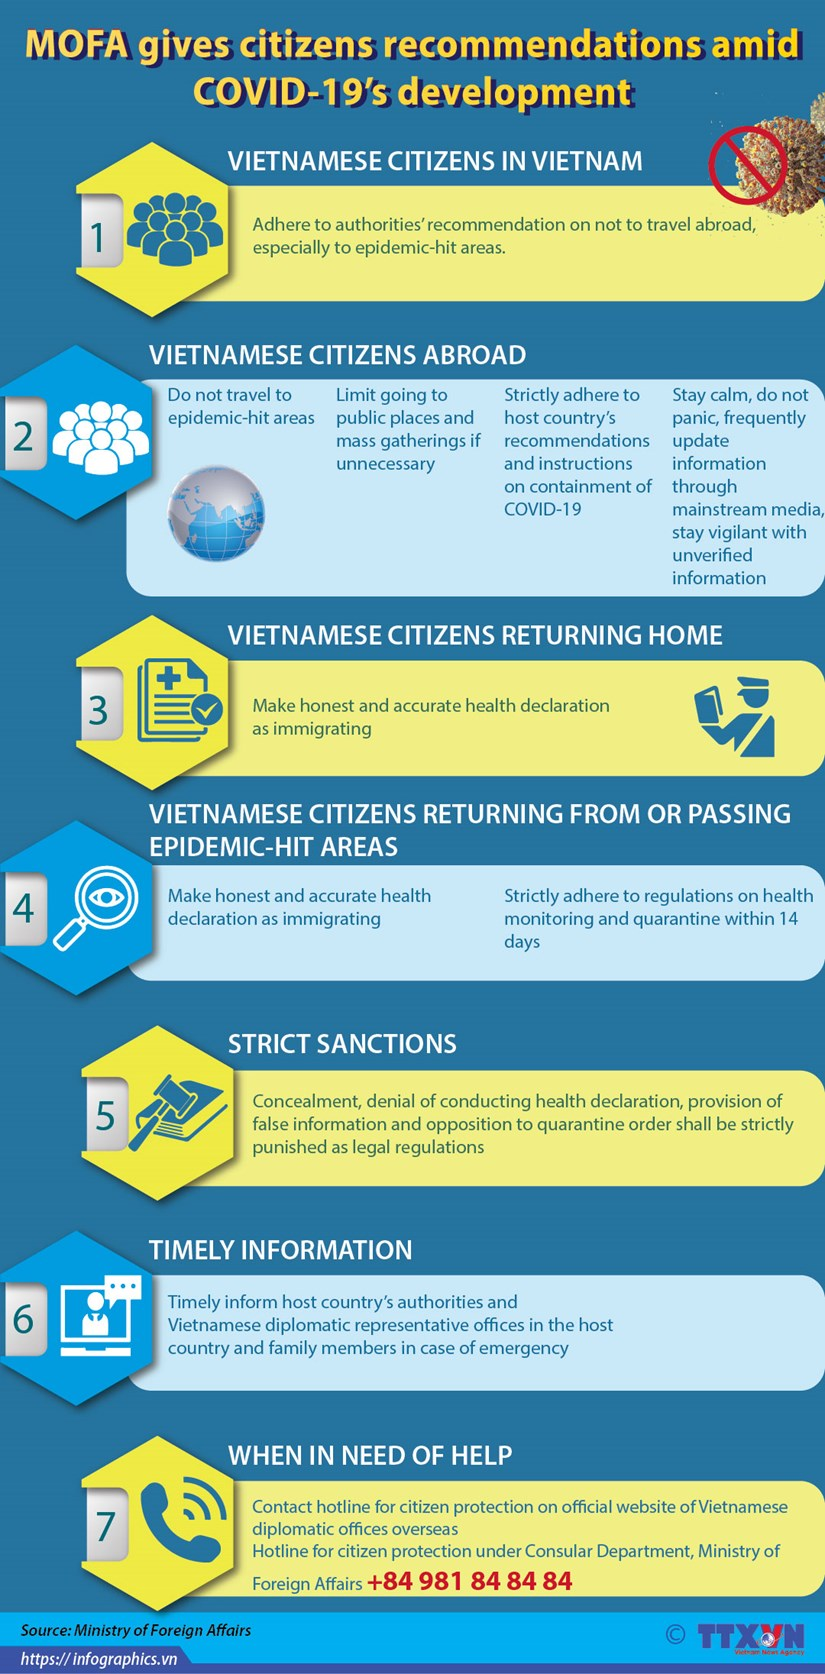 MOFA gives citizens recommendations amid COVID-19's development hinh anh 1